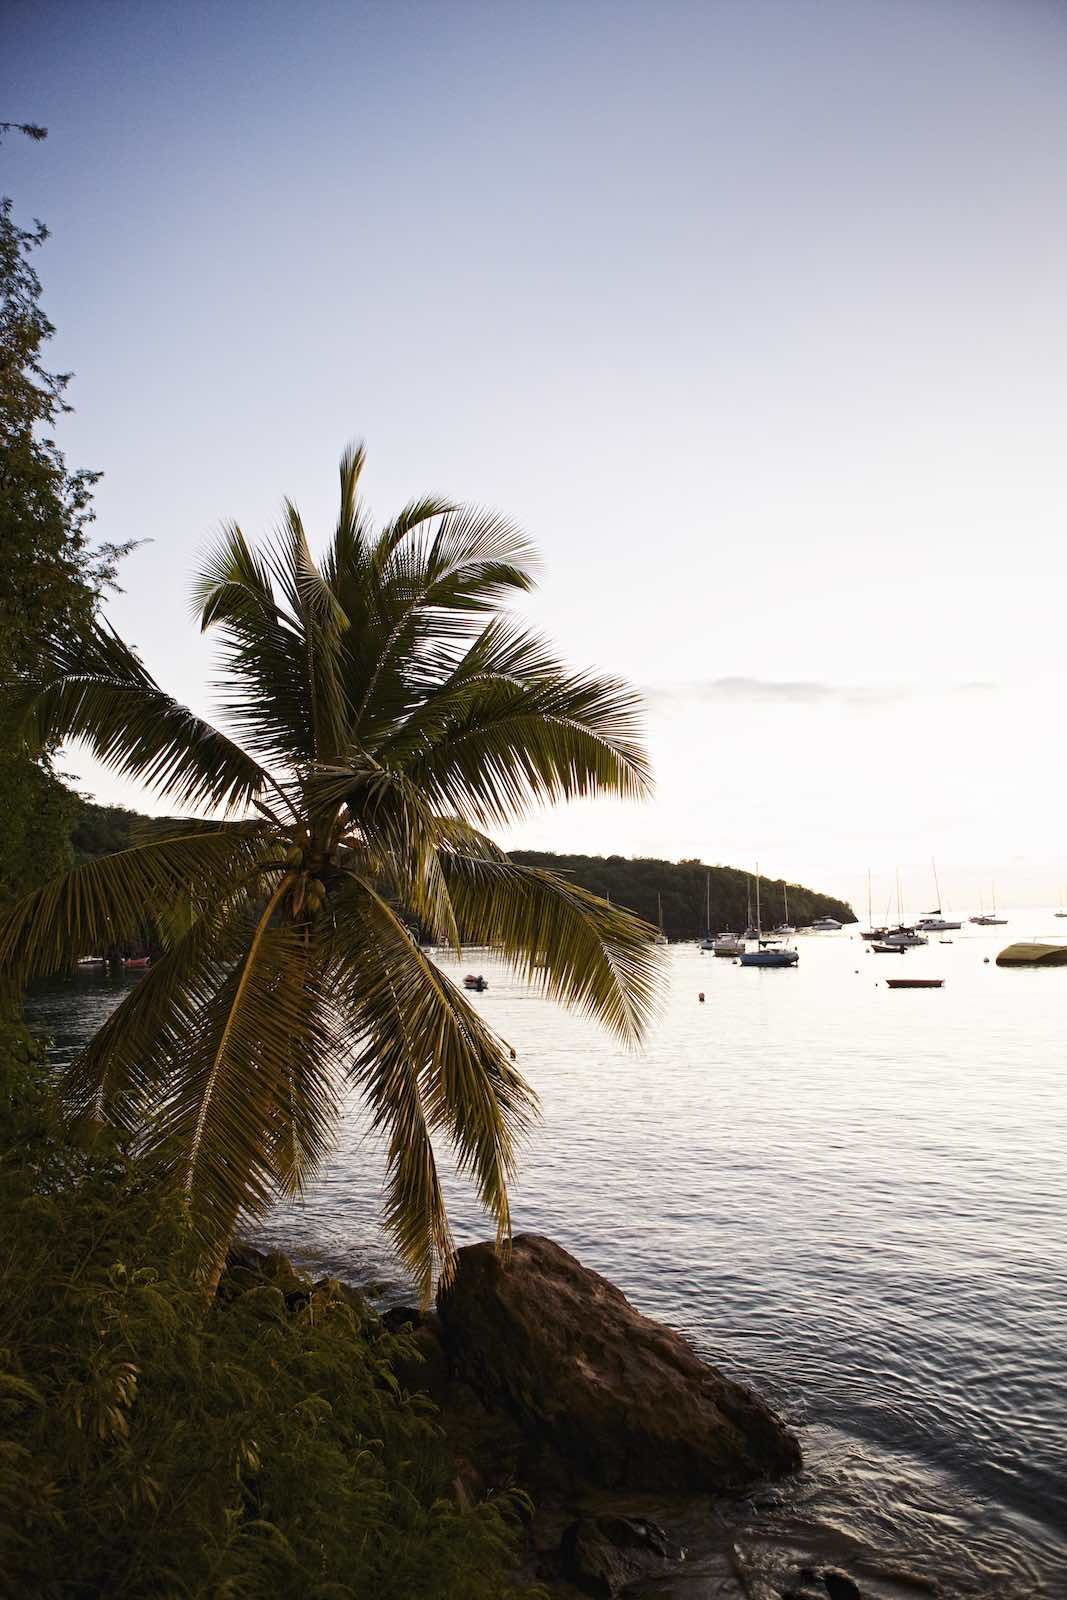 Jody Horton Photography - Palm tree on the beach of a cove with idle sailboats.